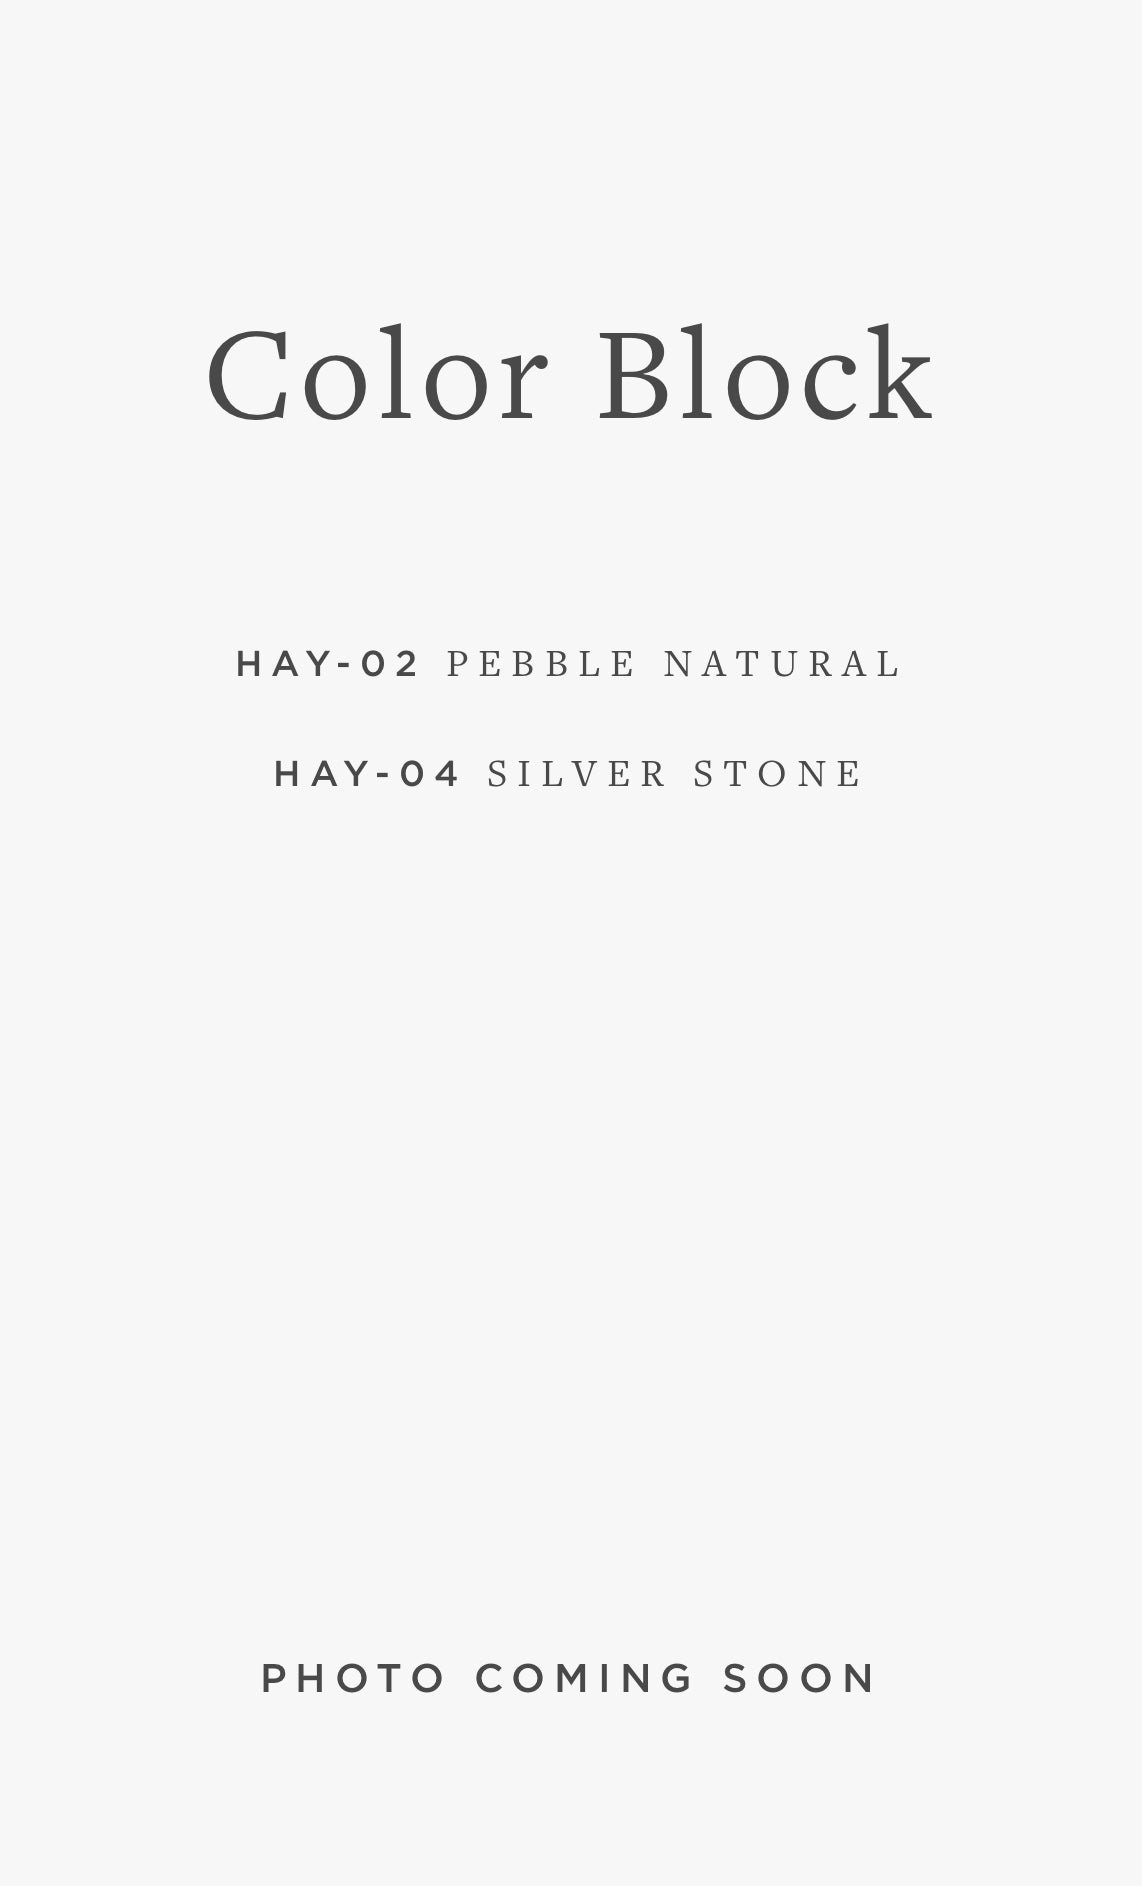 HAY-05 COLOR BLOCK / 01